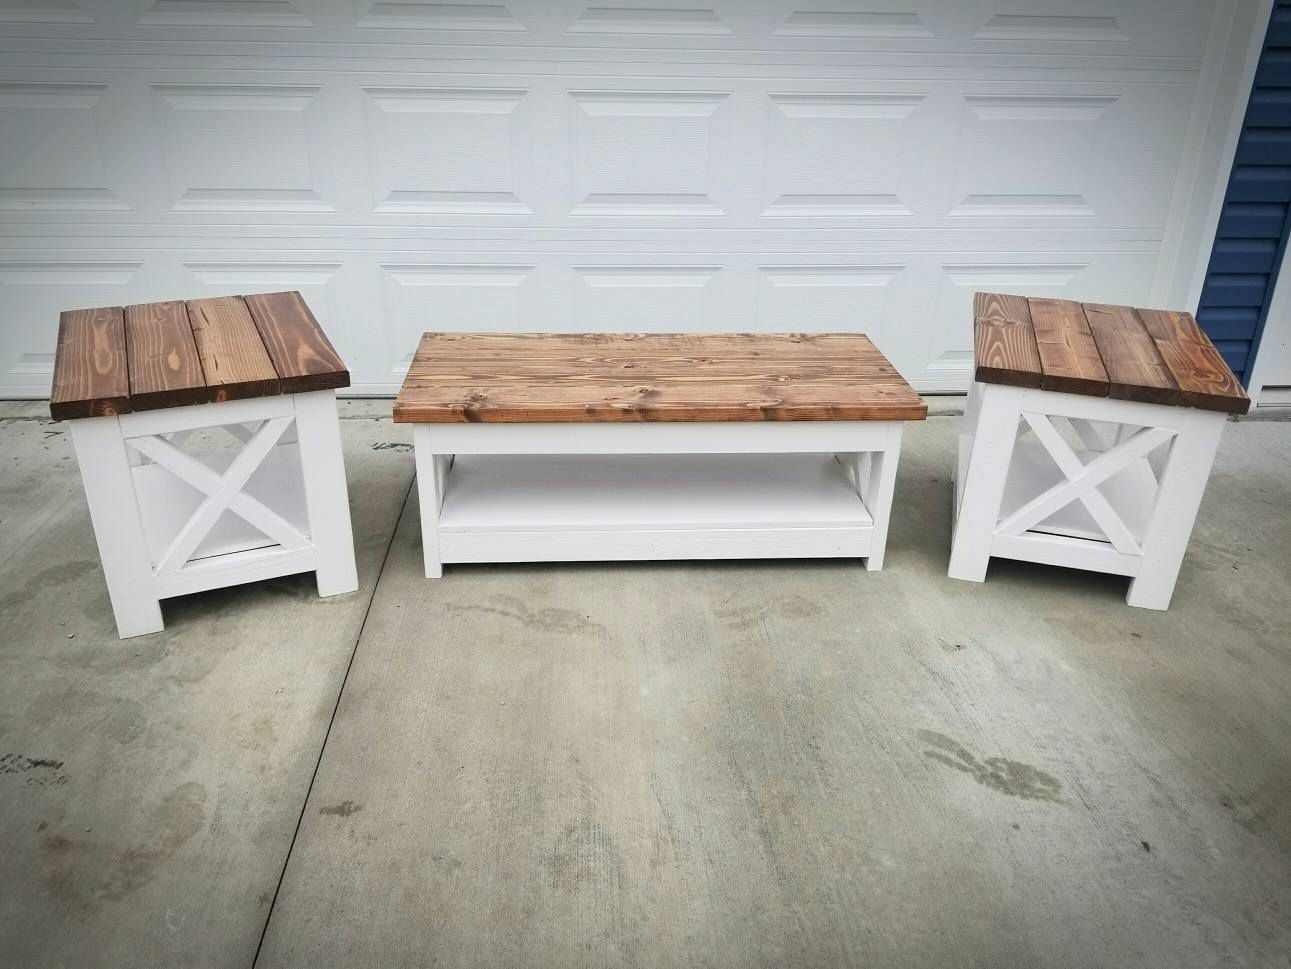 Farm house rustic x style coffee table and end table low